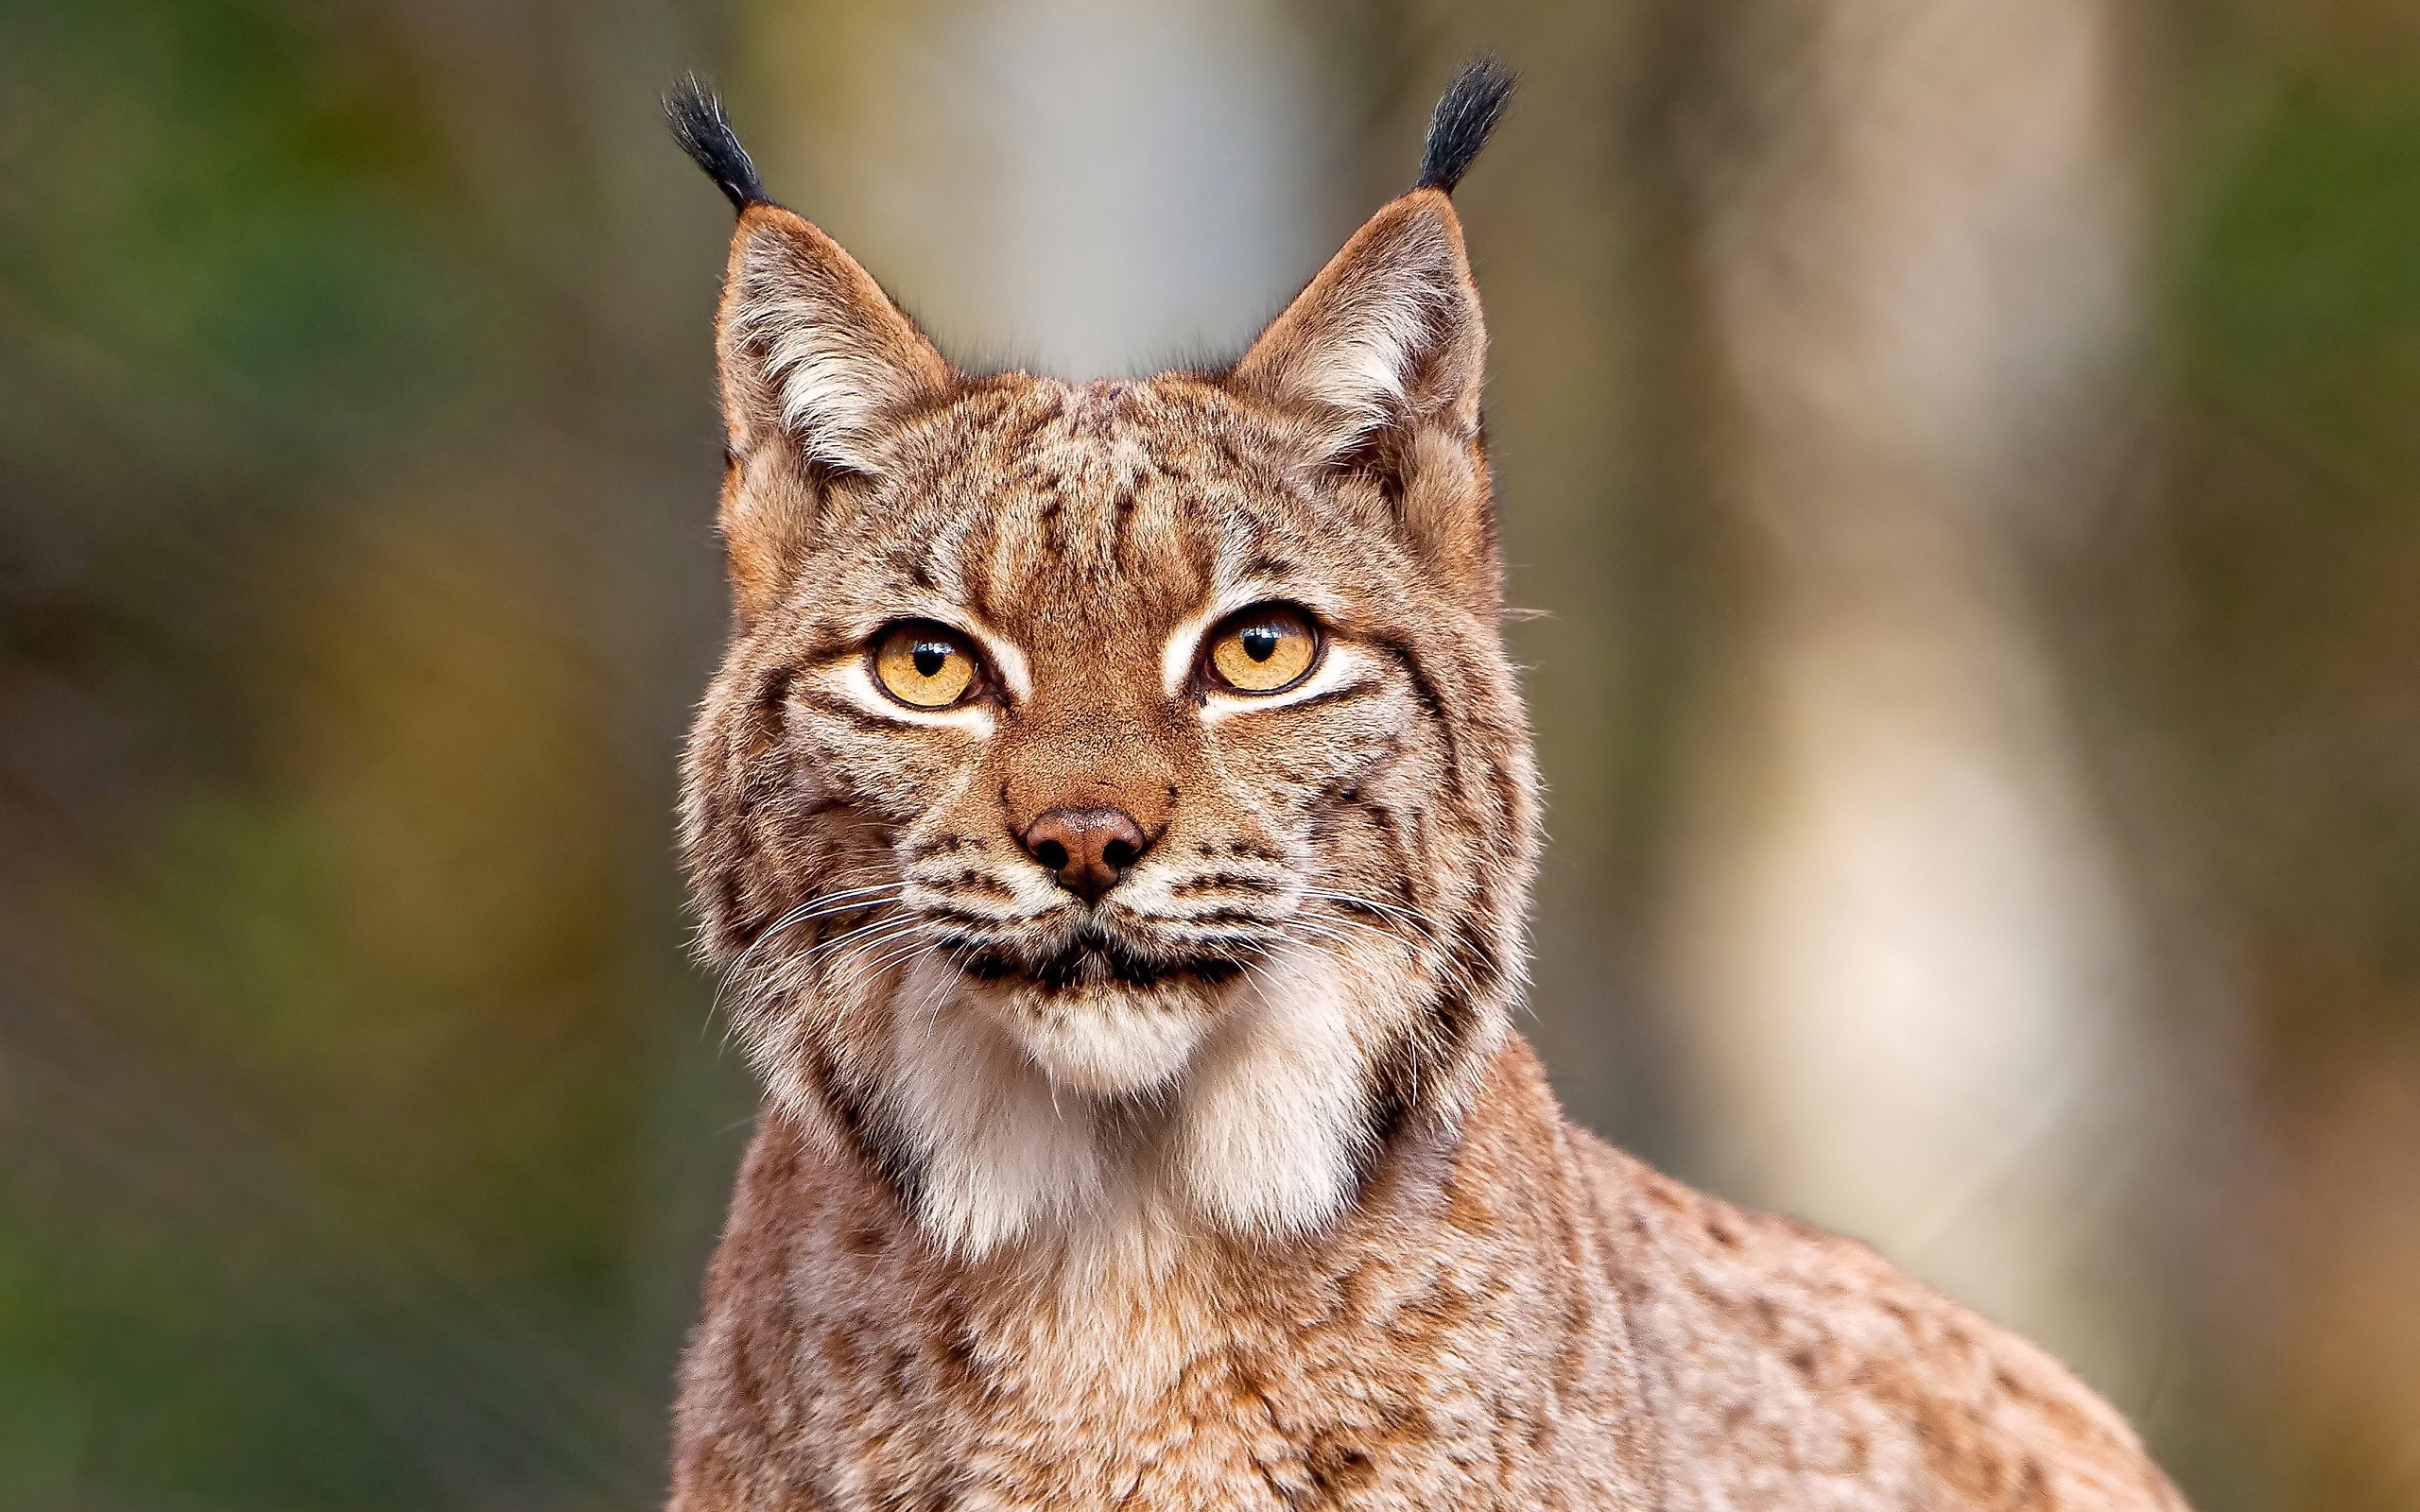 24202 download wallpaper Animals, Bobcats screensavers and pictures for free